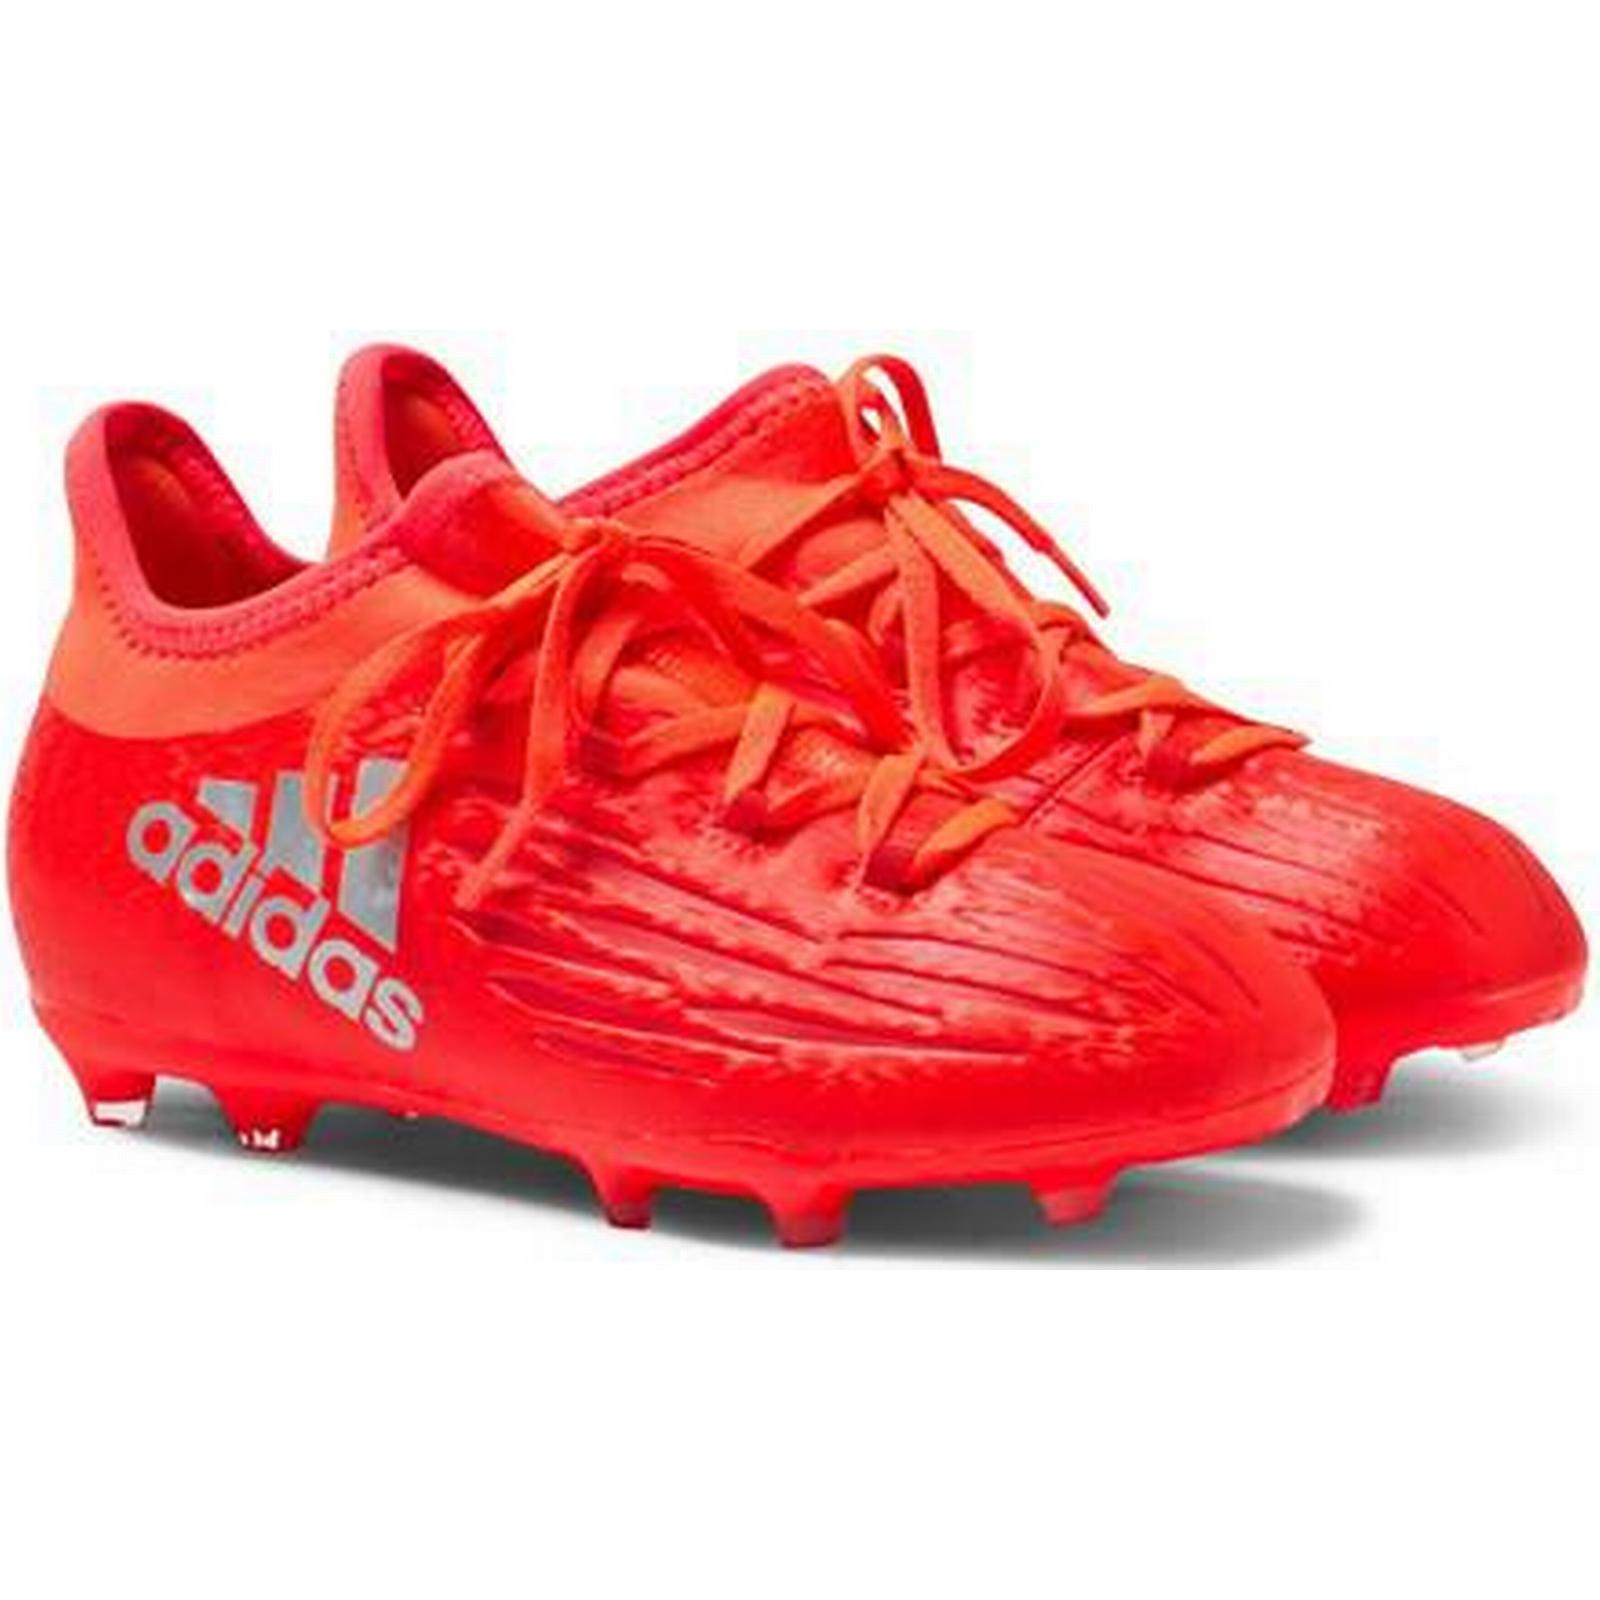 Red 16.1 X 16.1 Red Firm Ground Football Boots 7aa7d0